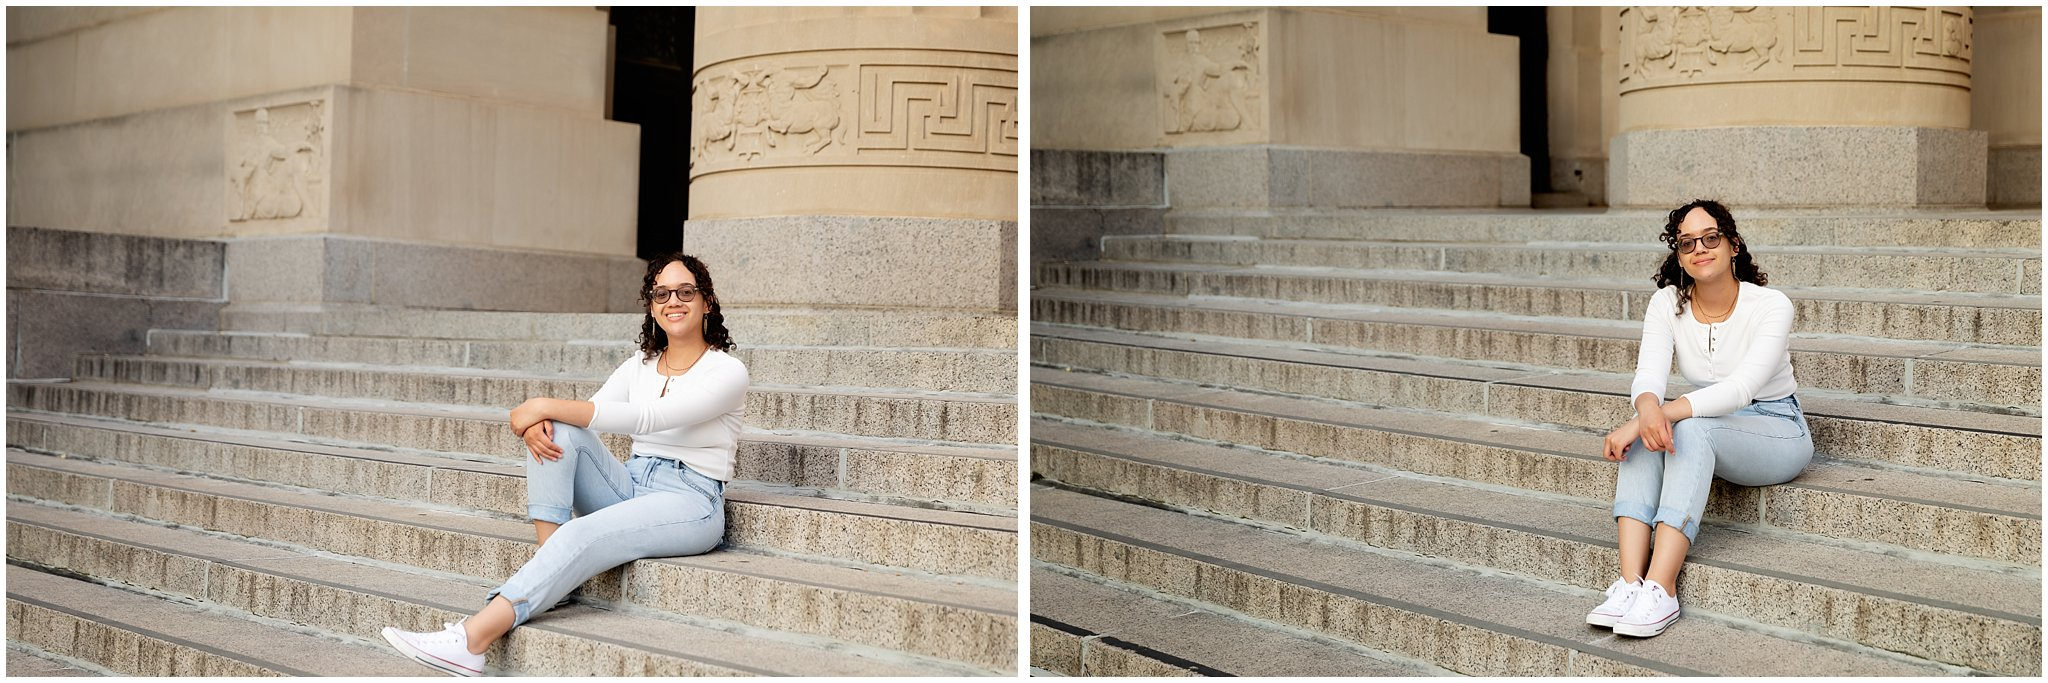 Ann Arbor Senior Pictures | Class of 2020 Pioneer High School